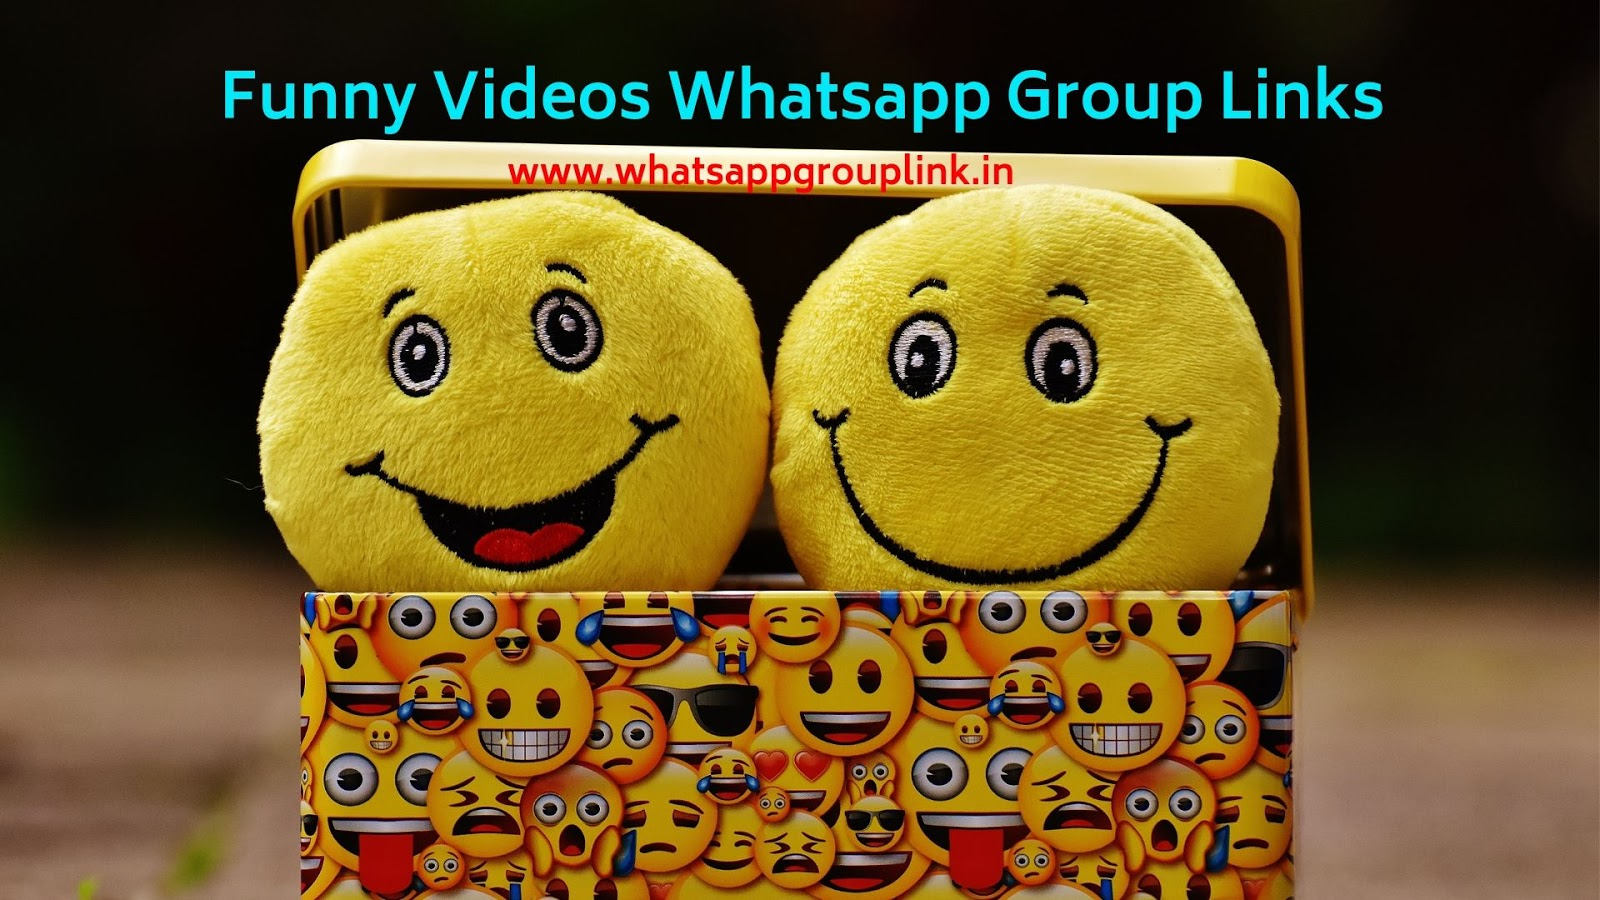 Whatsapp Group Link: Funny Videos Whatsapp Group Links